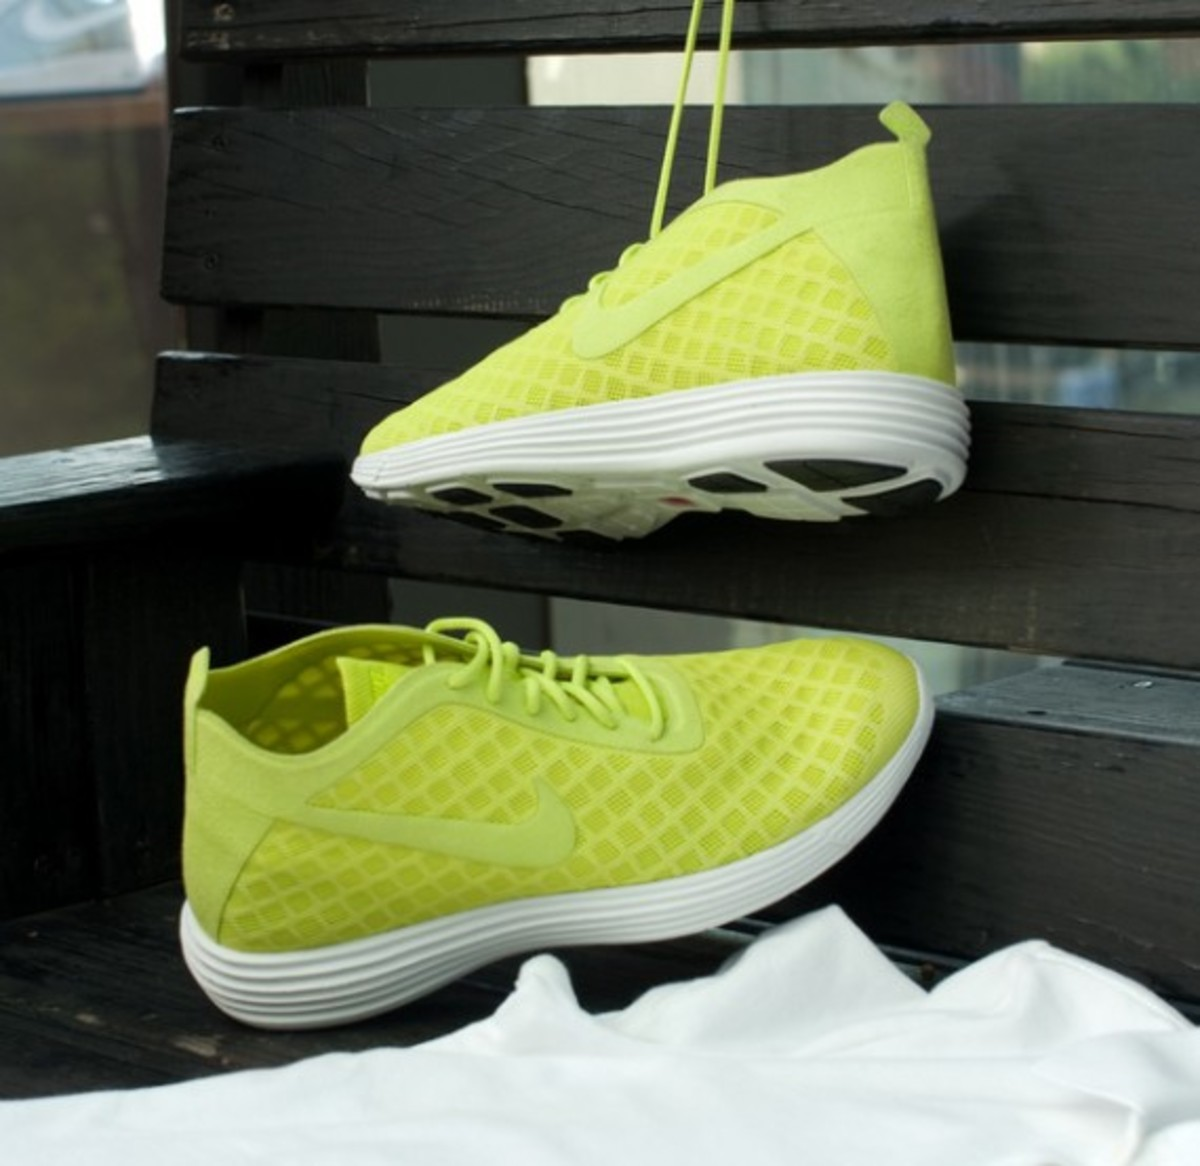 nike-summer-2010-preview-10a